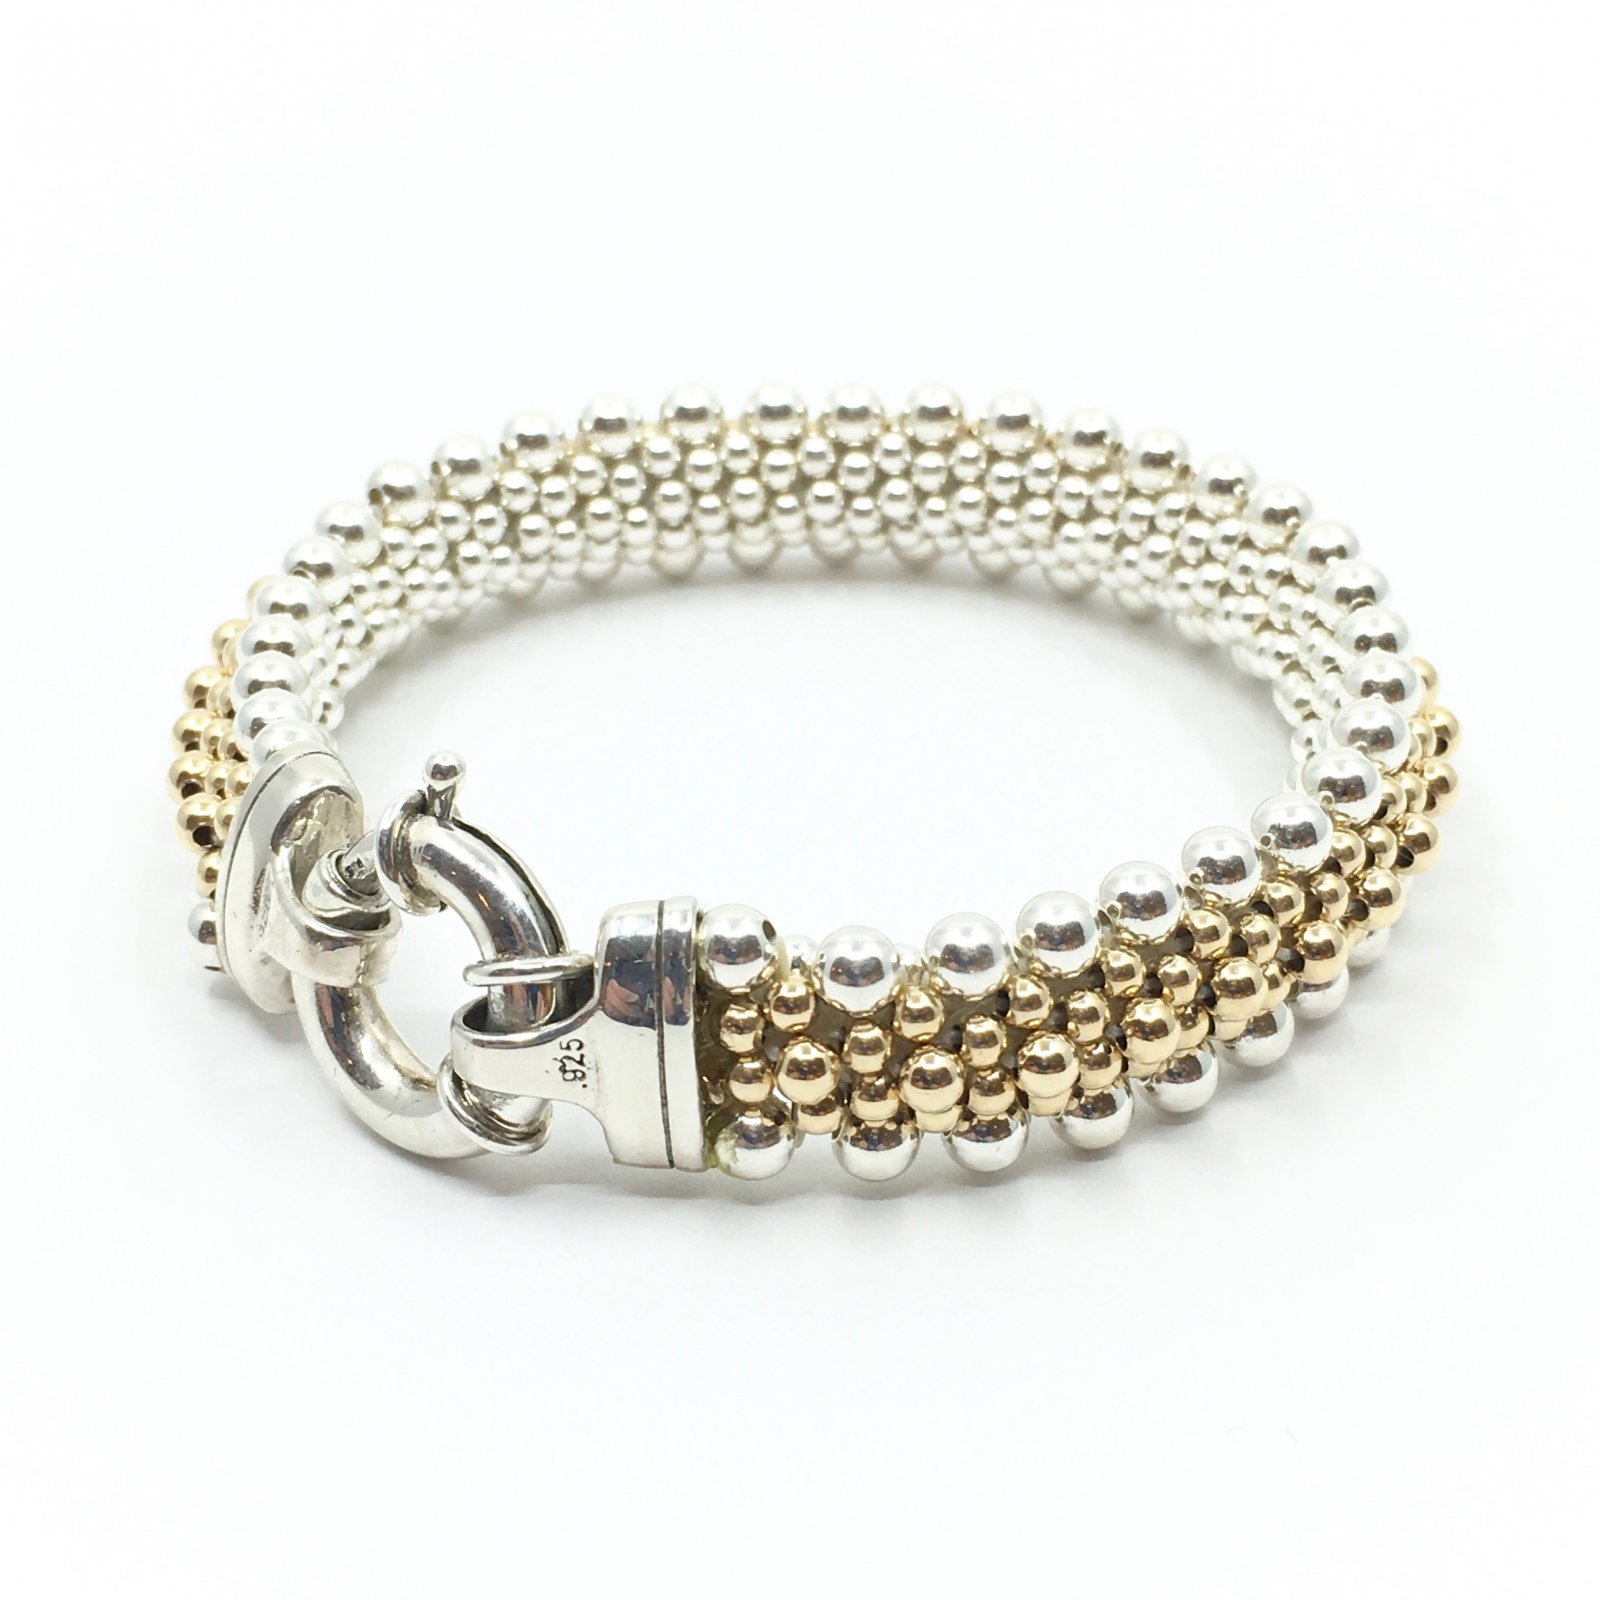 Dovera Grand Classic with Silver Spine Bracelet